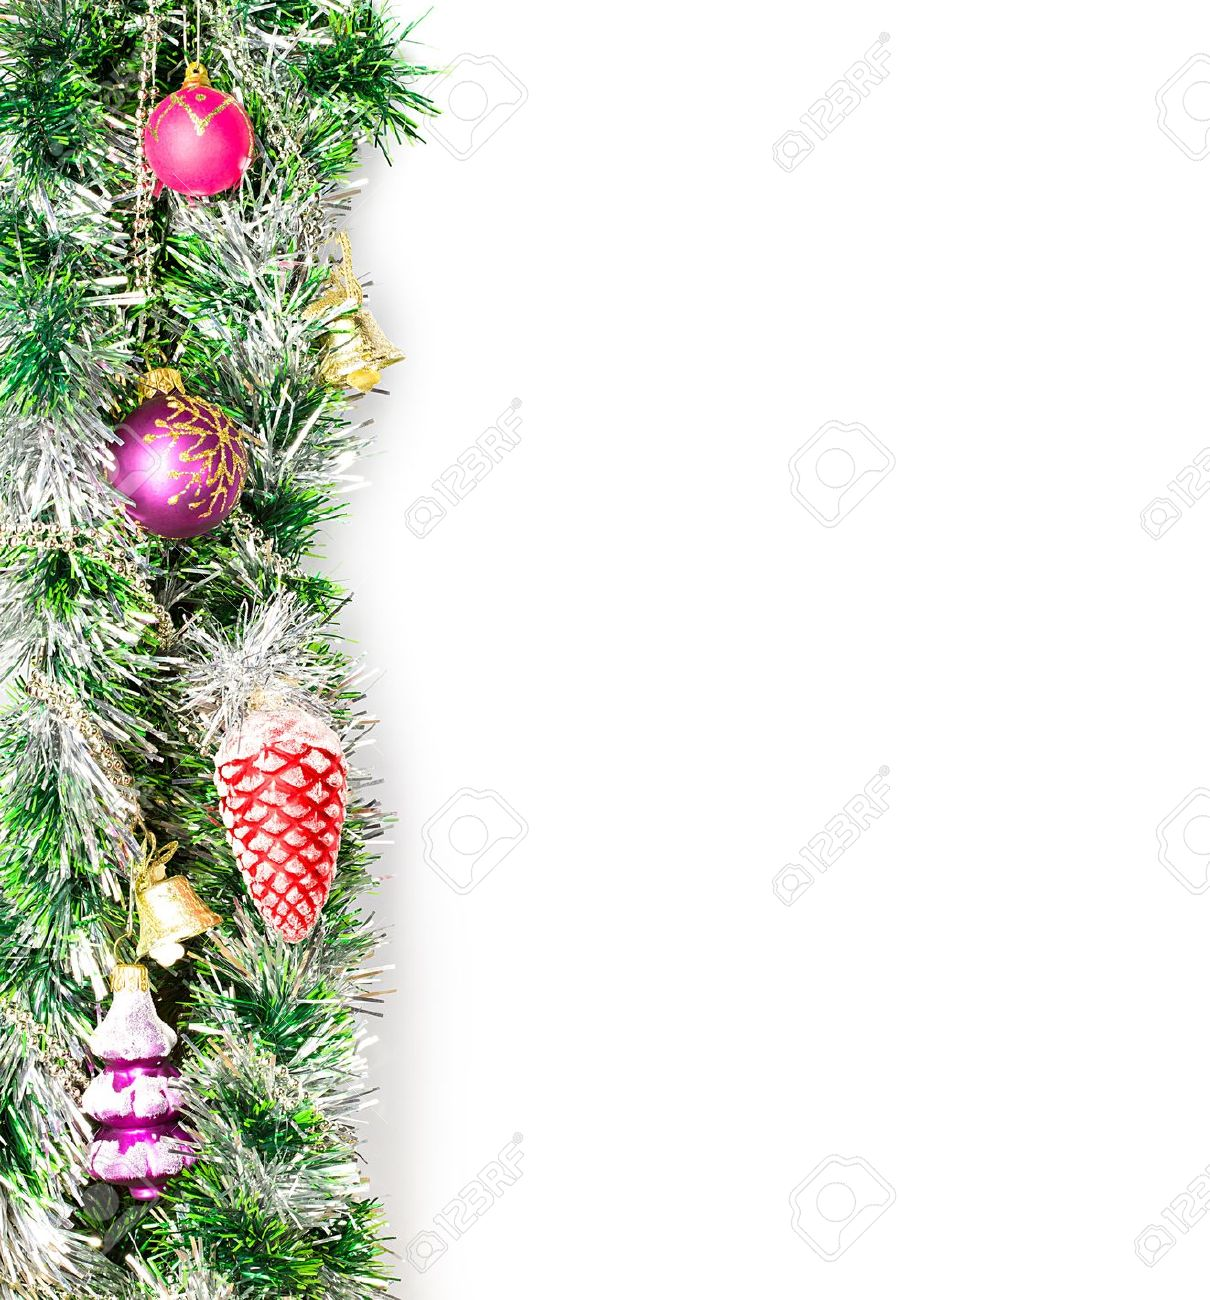 Christmas Garland Border With Decoration Ornament On White